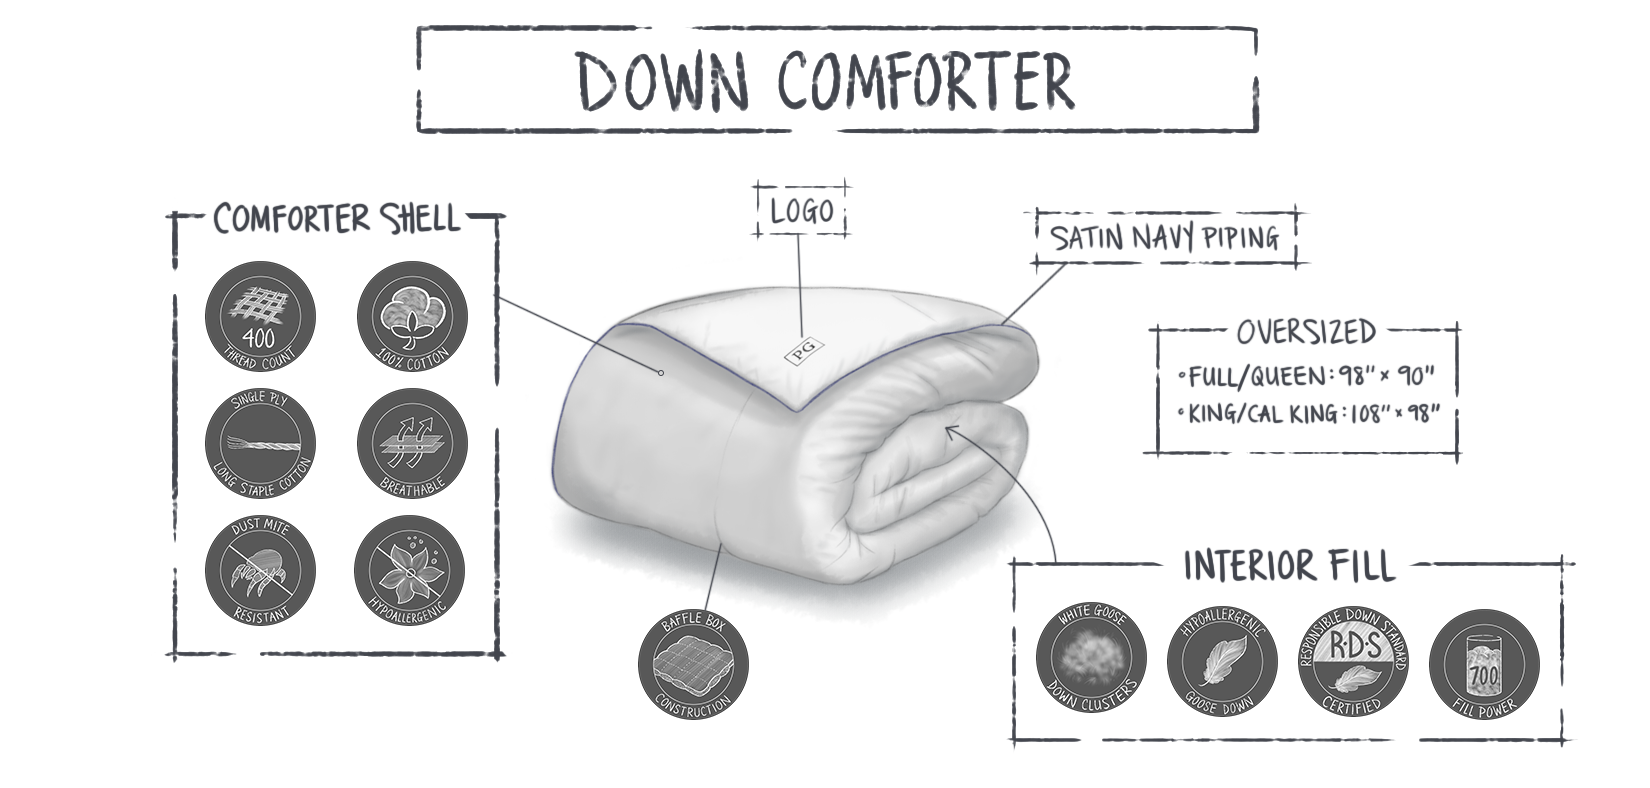 Down Comforter infographic_final_Mar 20 2018_Loraine Yow